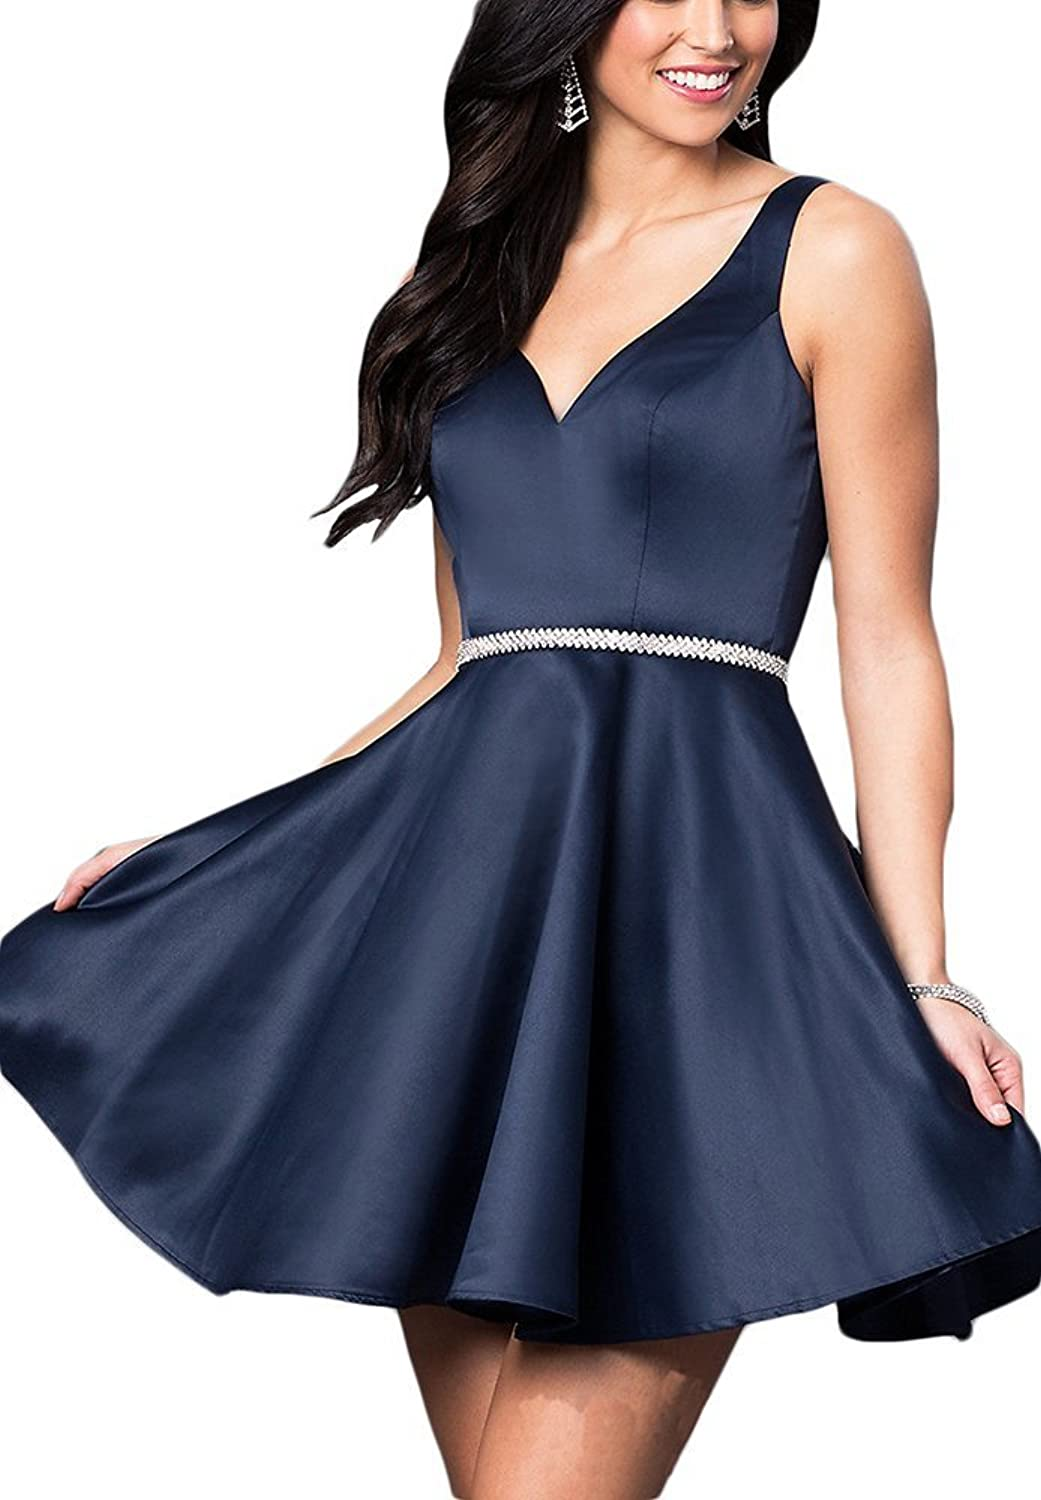 CongYunGe Short Aline Prom Homecoming Dresses VNeck Cocktai Party Gowns